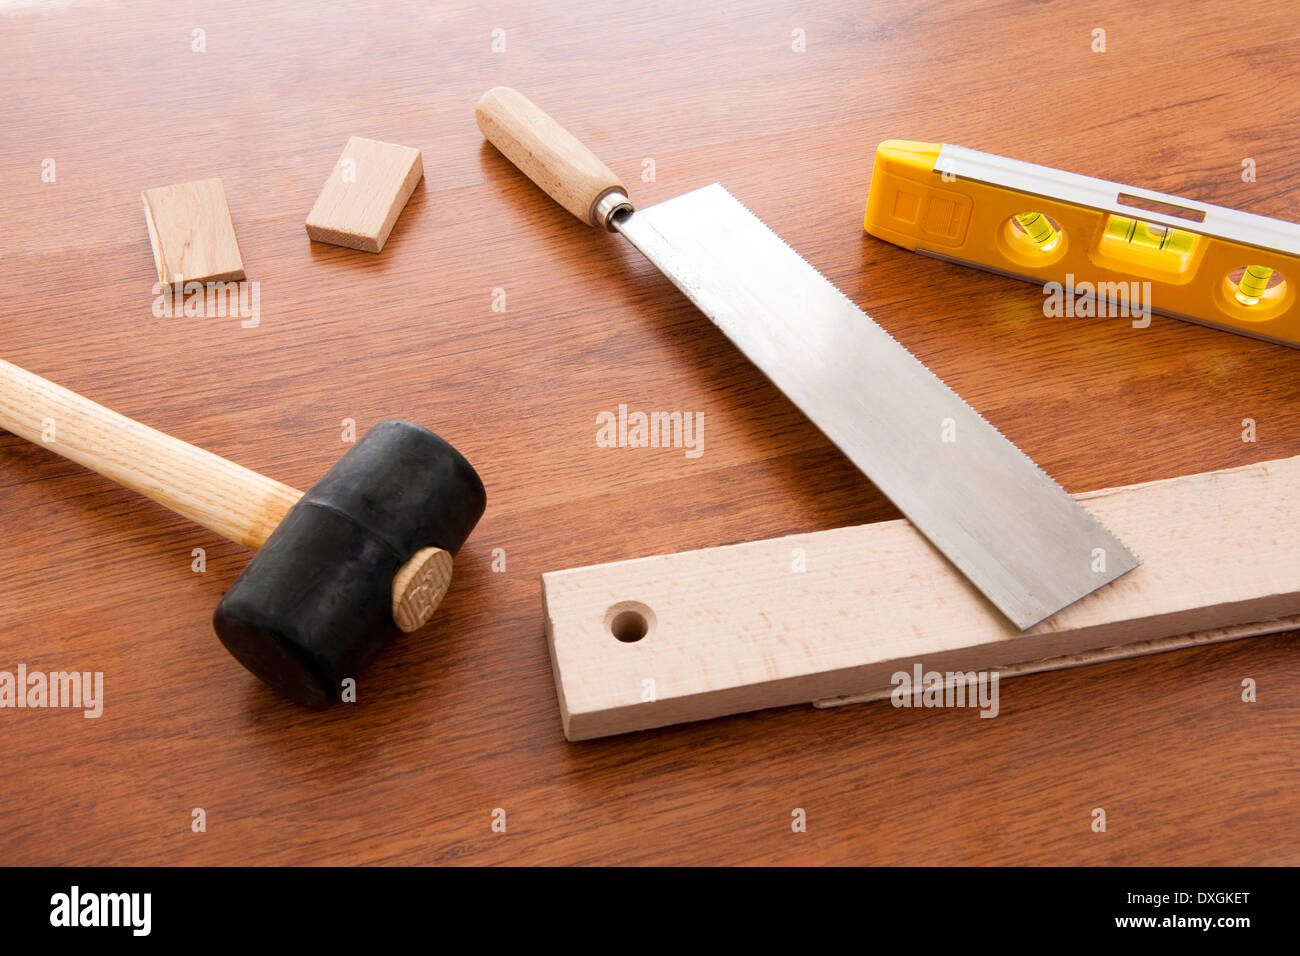 Woodworking Tools Stock Photo 67978704 Alamy